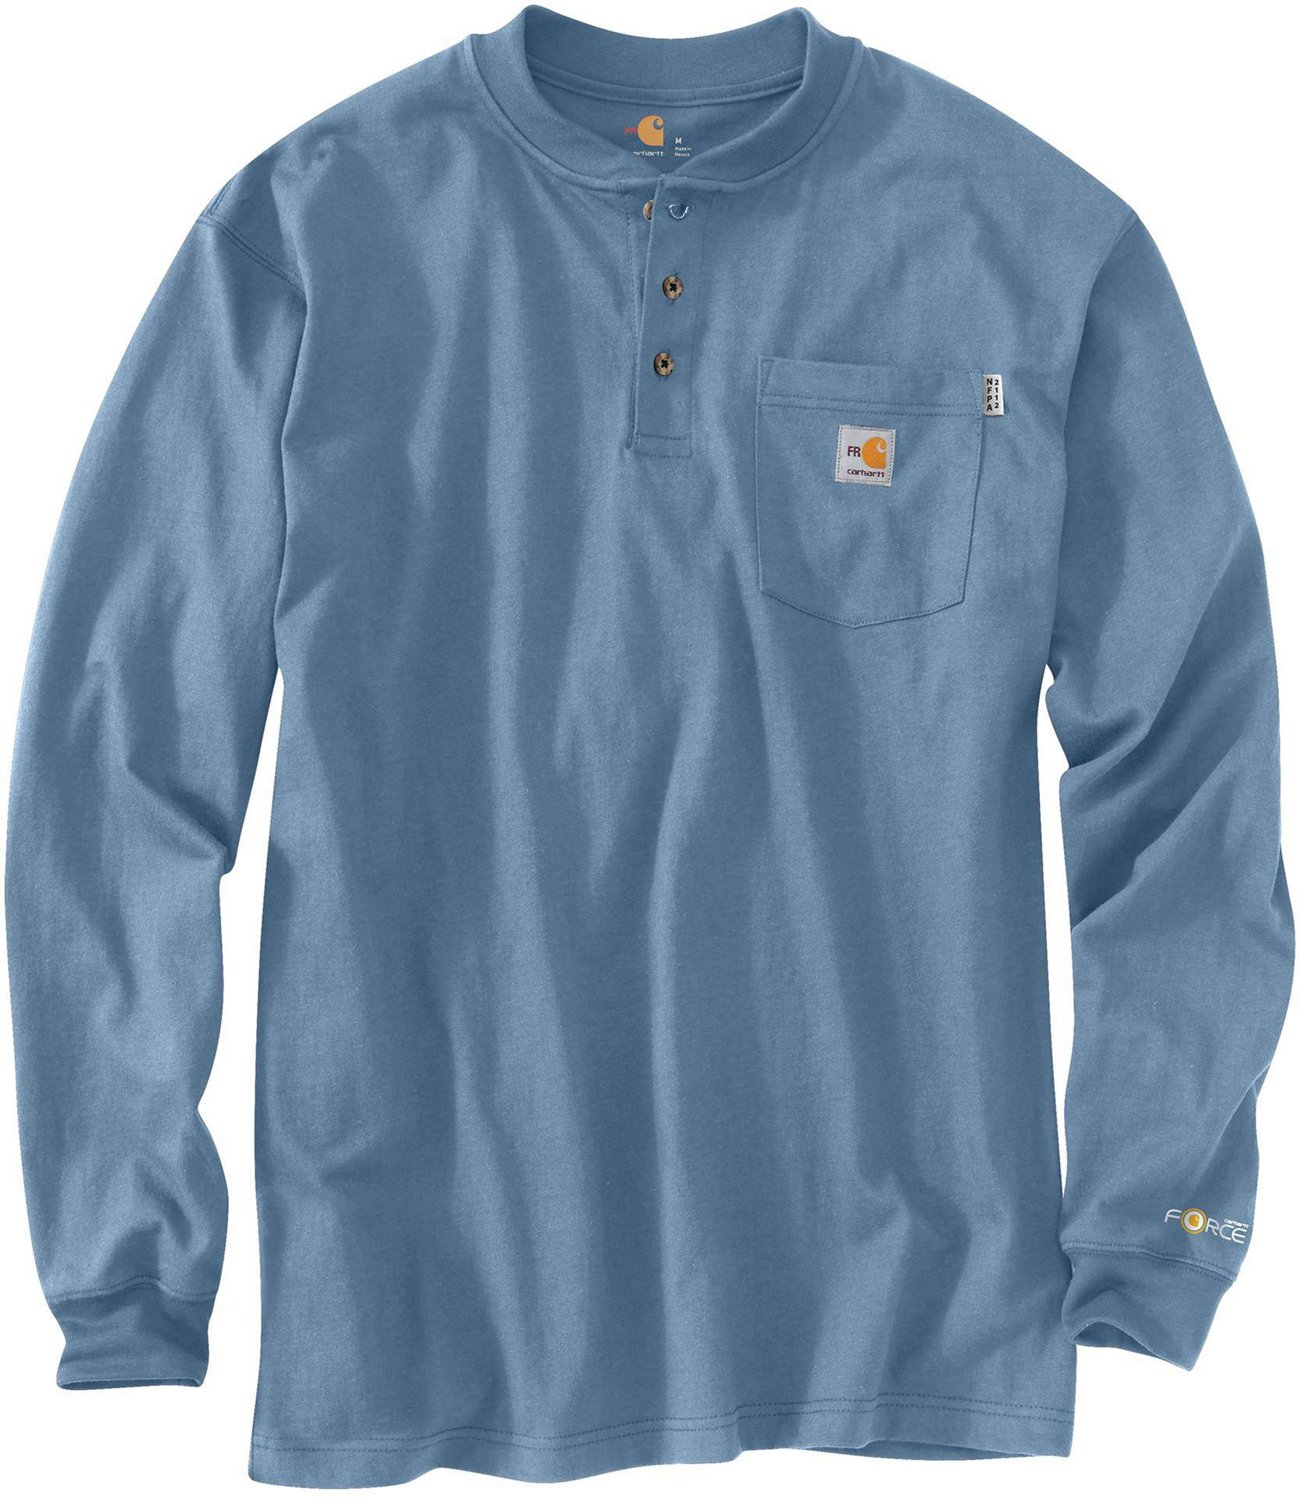 75dc04beb Display product reviews for Carhartt Men s Flame-Resistant Force Cotton Long  Sleeve Henley This product is currently selected